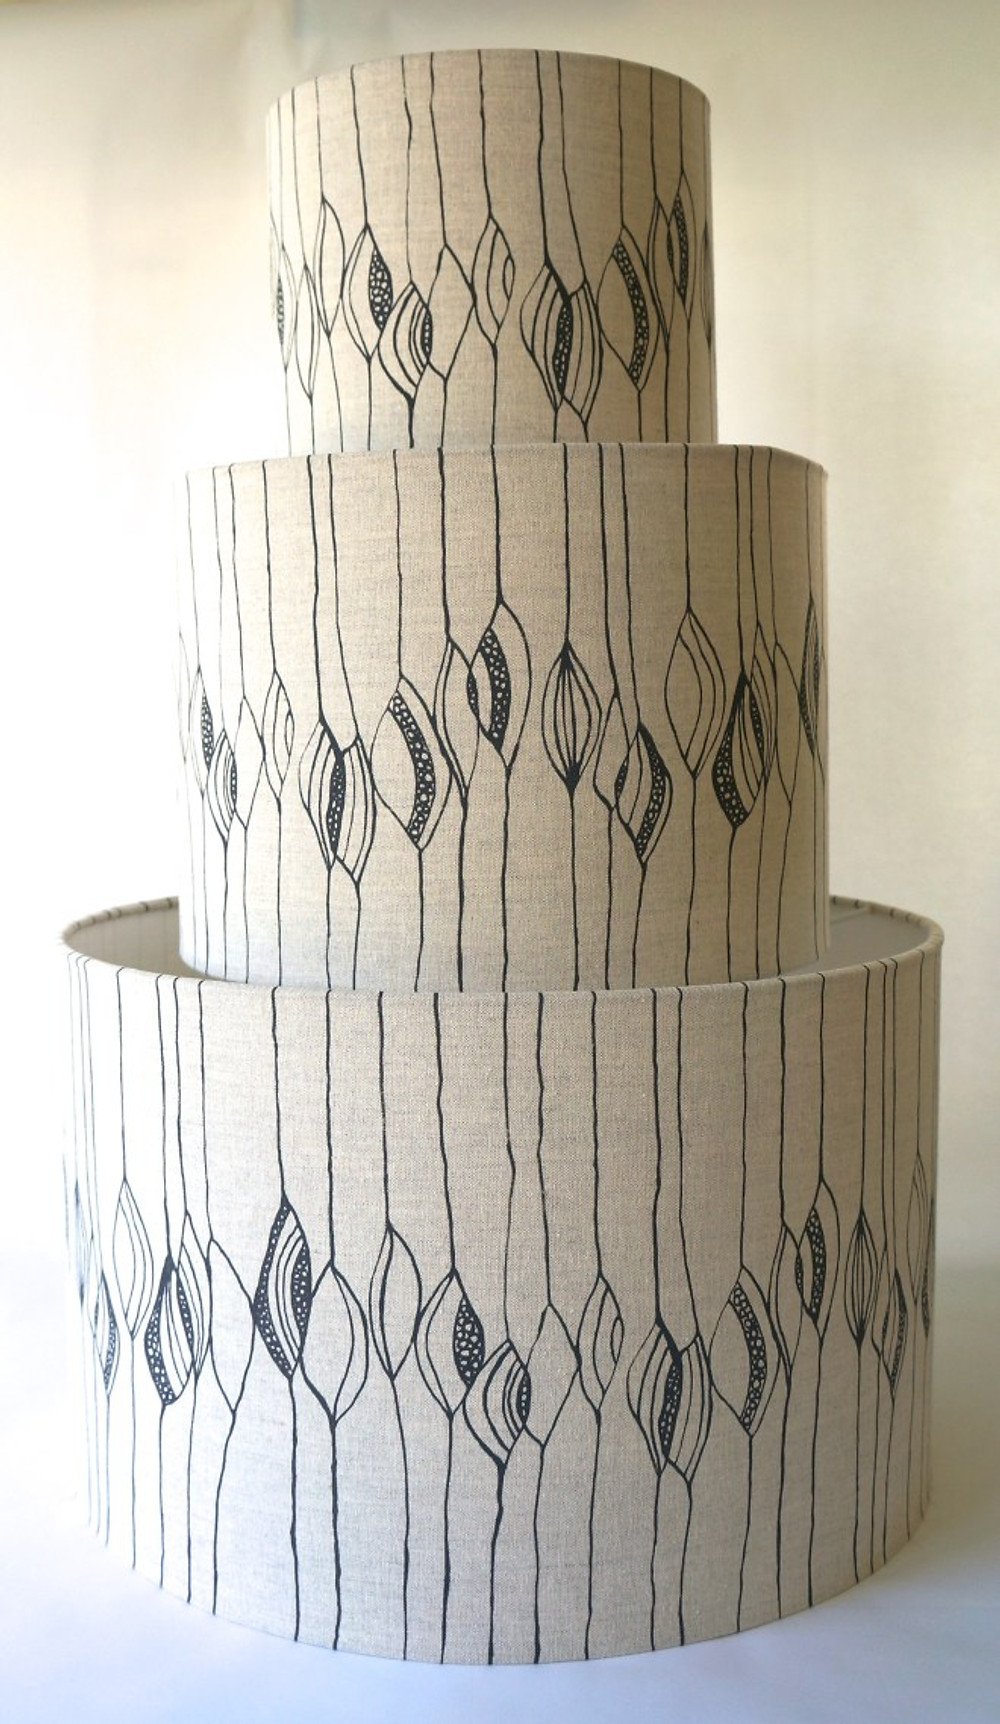 Needcraft lampshade making supplies blog_Caron Ironside Design